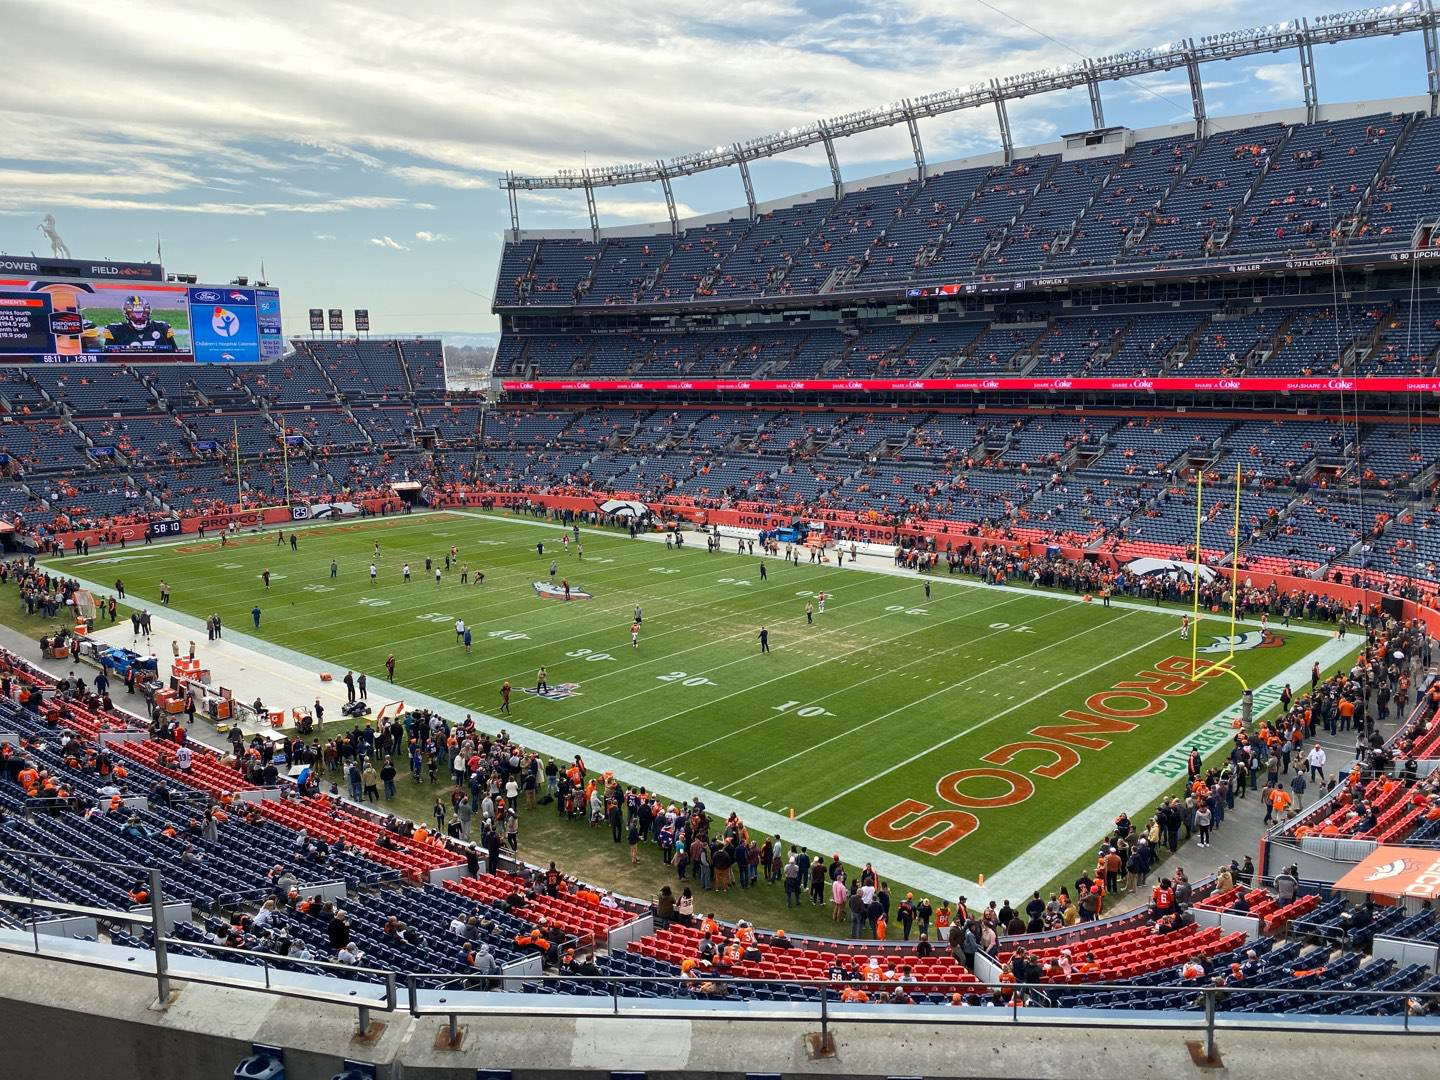 Empower Field at Mile High Stadium Section 329 Rangée 5 Siège 9